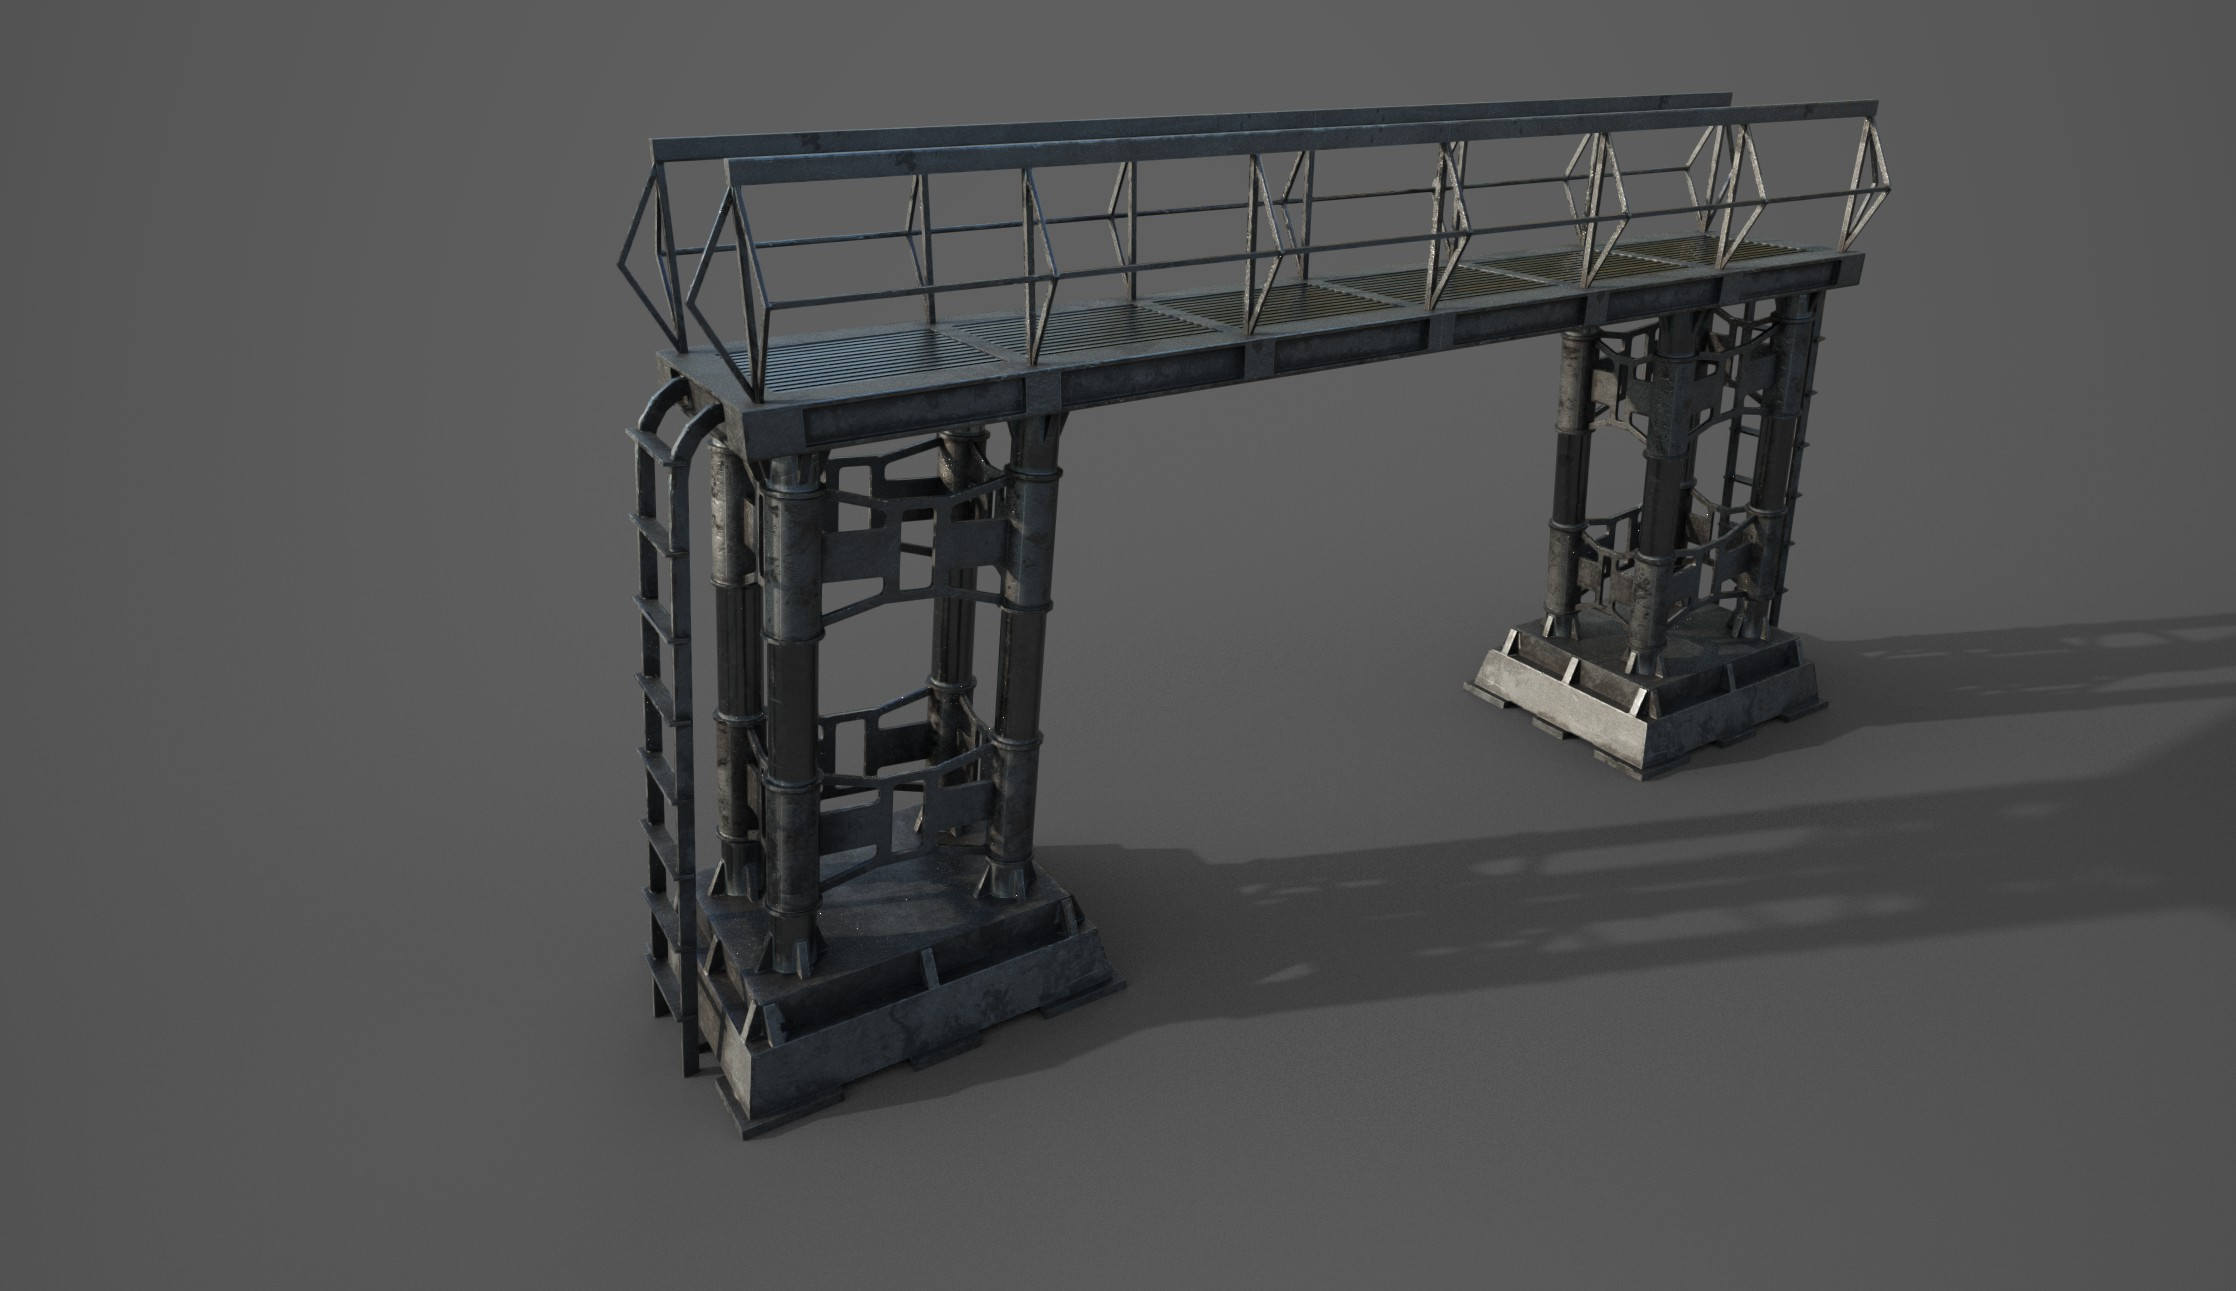 Star_Wars_Hangar_Bridge.jpg